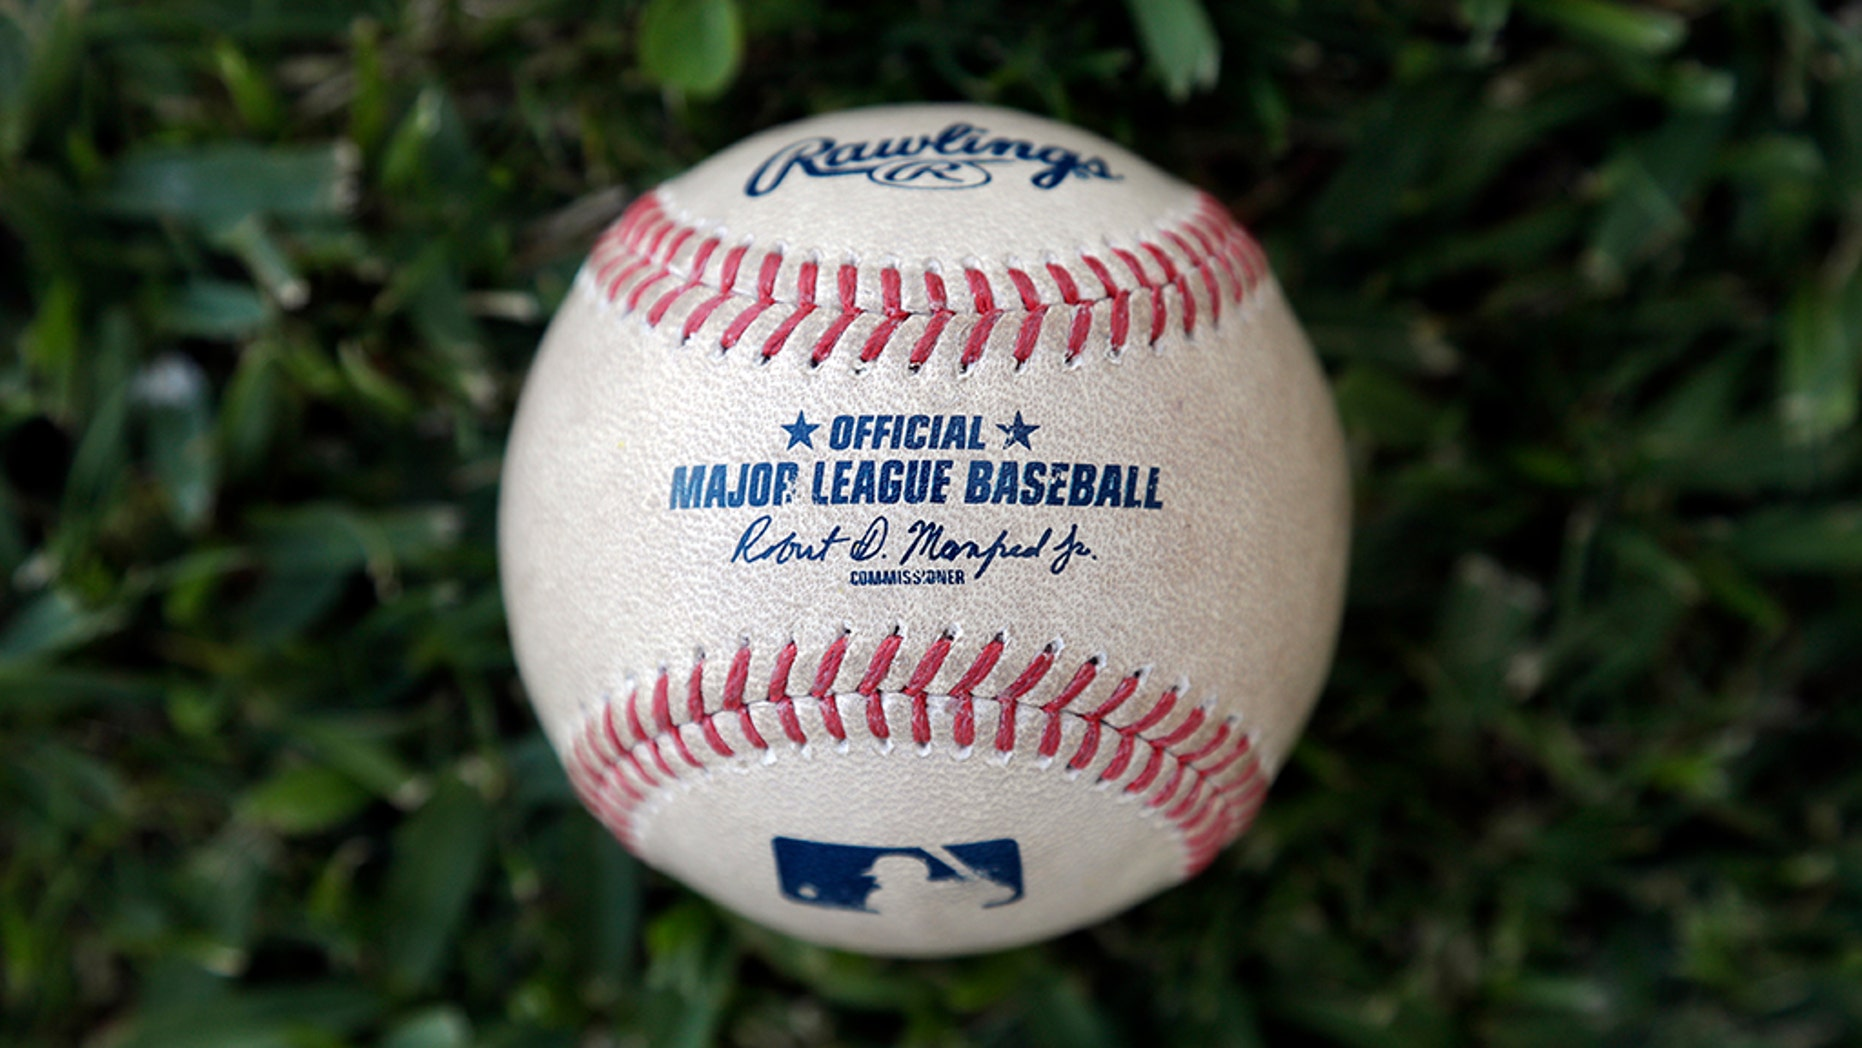 Major League Baseball's new prototype baseball is shown Wednesday, March 20, 2019, in Clearwater, Fla. (AP Photo/Chris O'Meara)